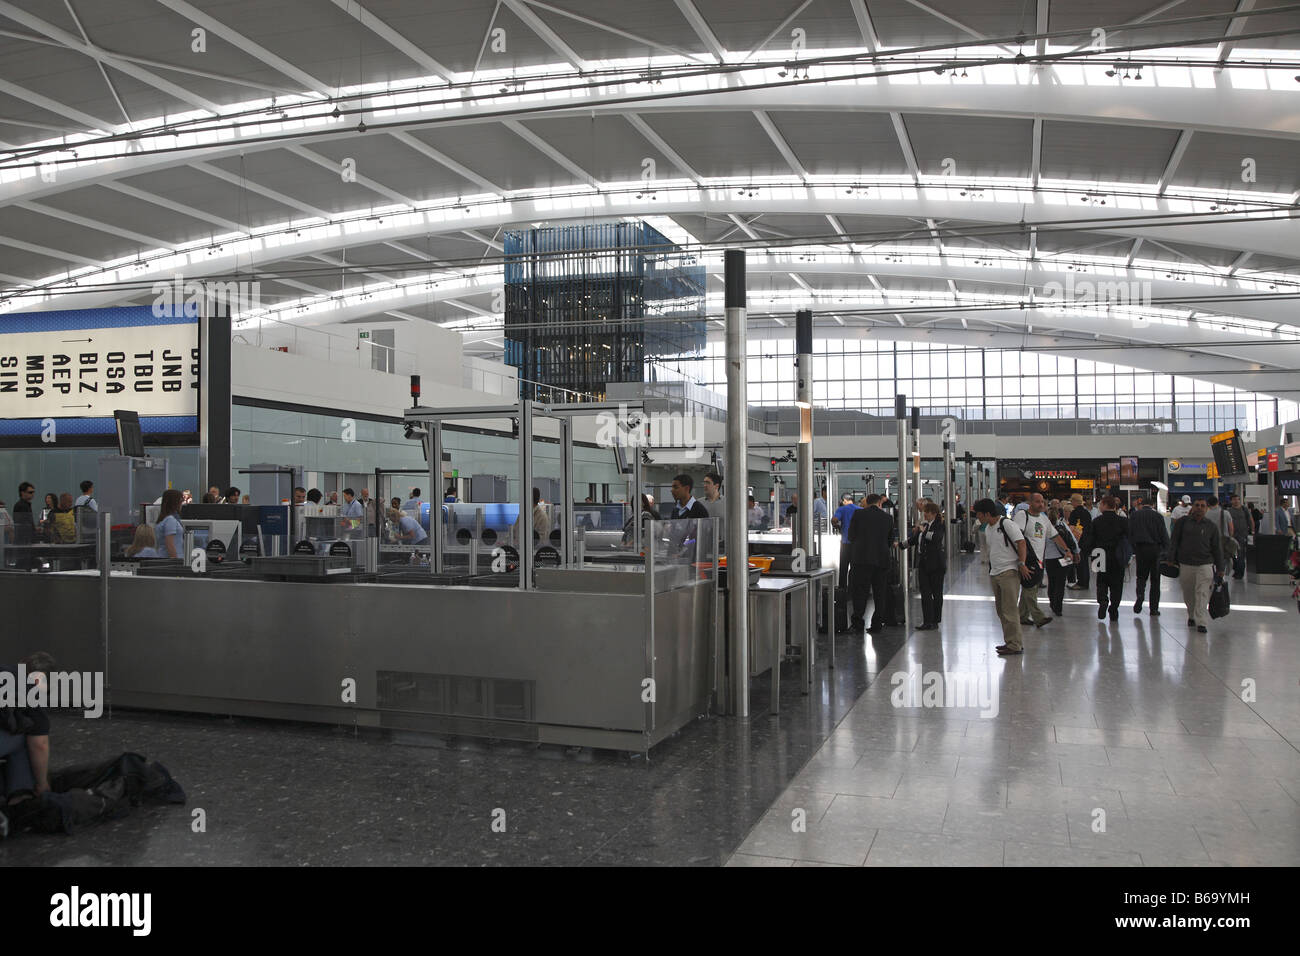 London Heathrow Airport Terminal 5 Five Architekt Architect Richard Rogers - Stock Image